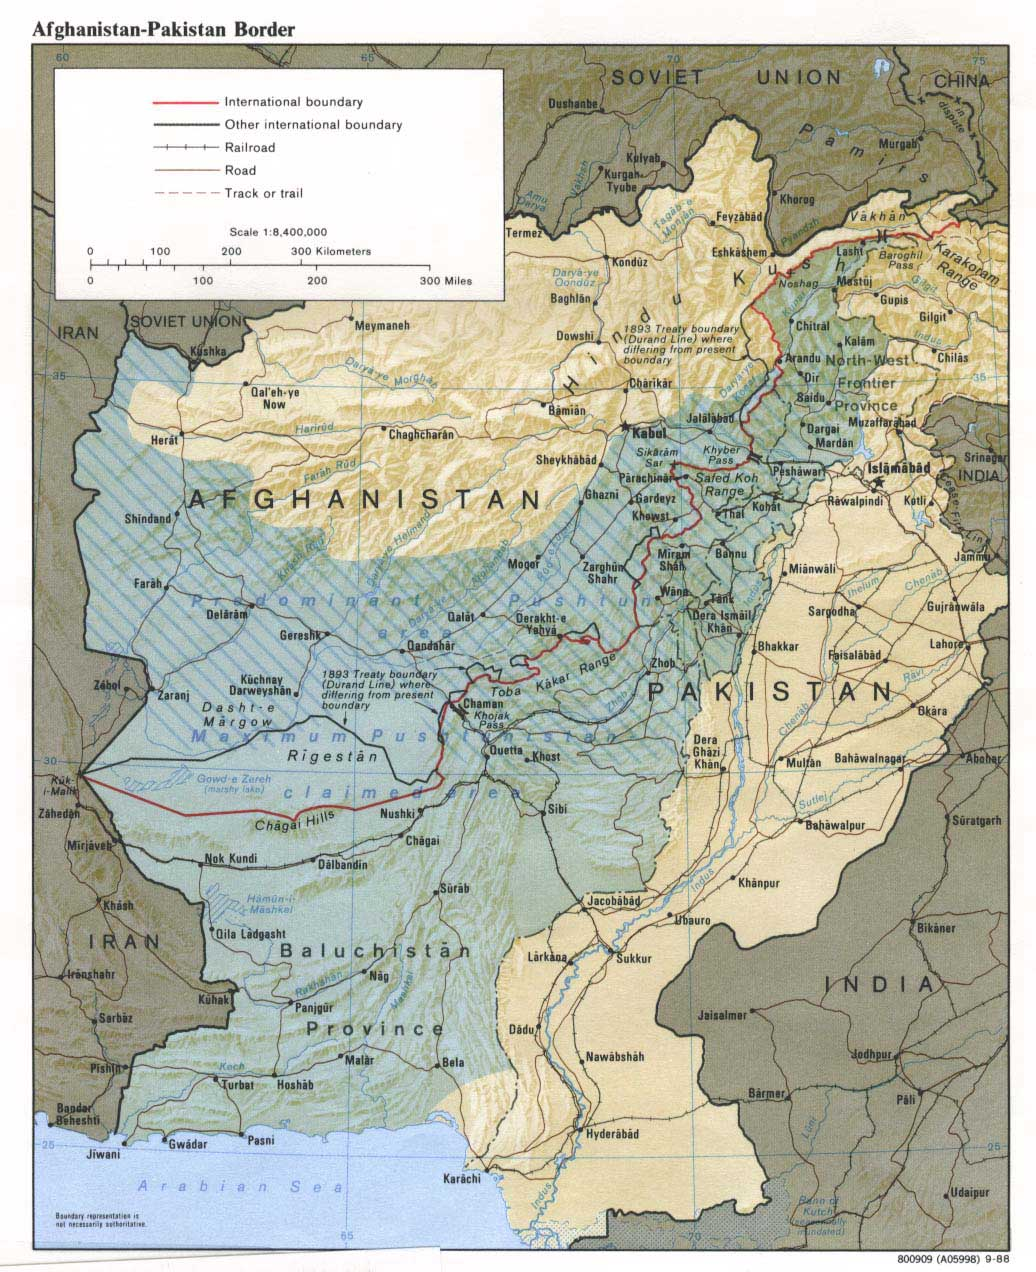 Map of Afghanistan Pakistan Border